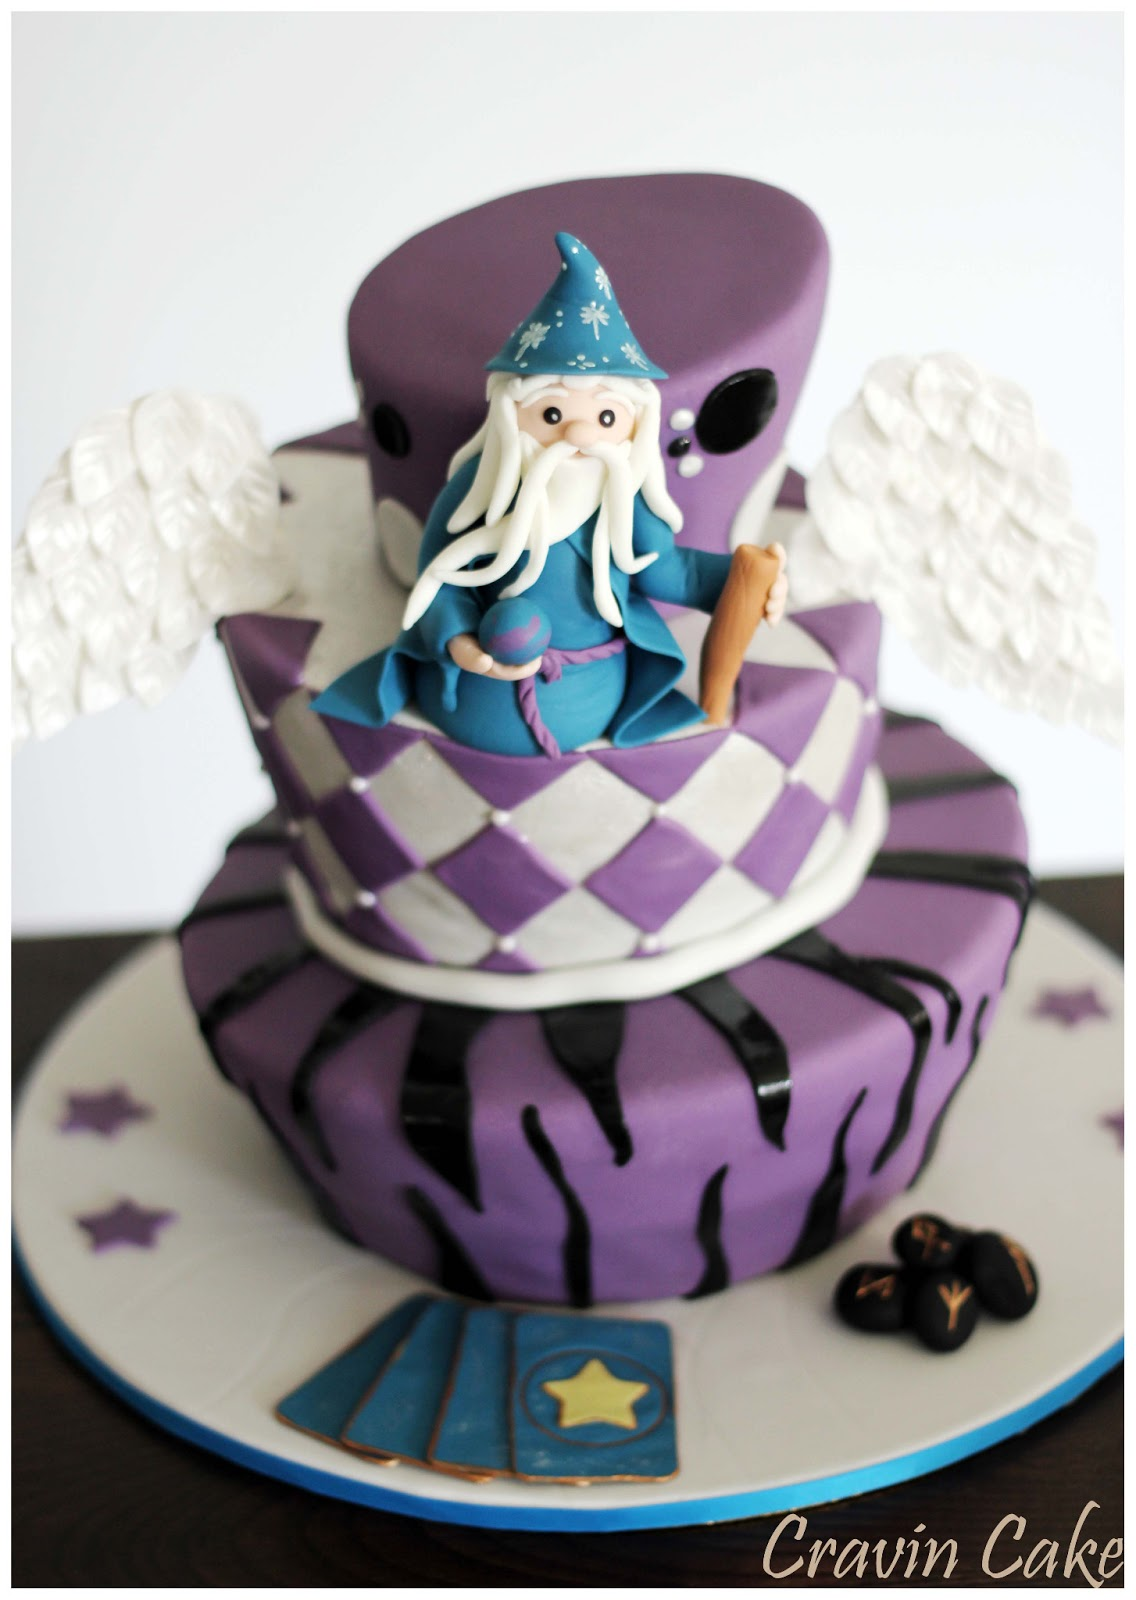 Cravin Cake Magical Wizard Mad Hatter Cake